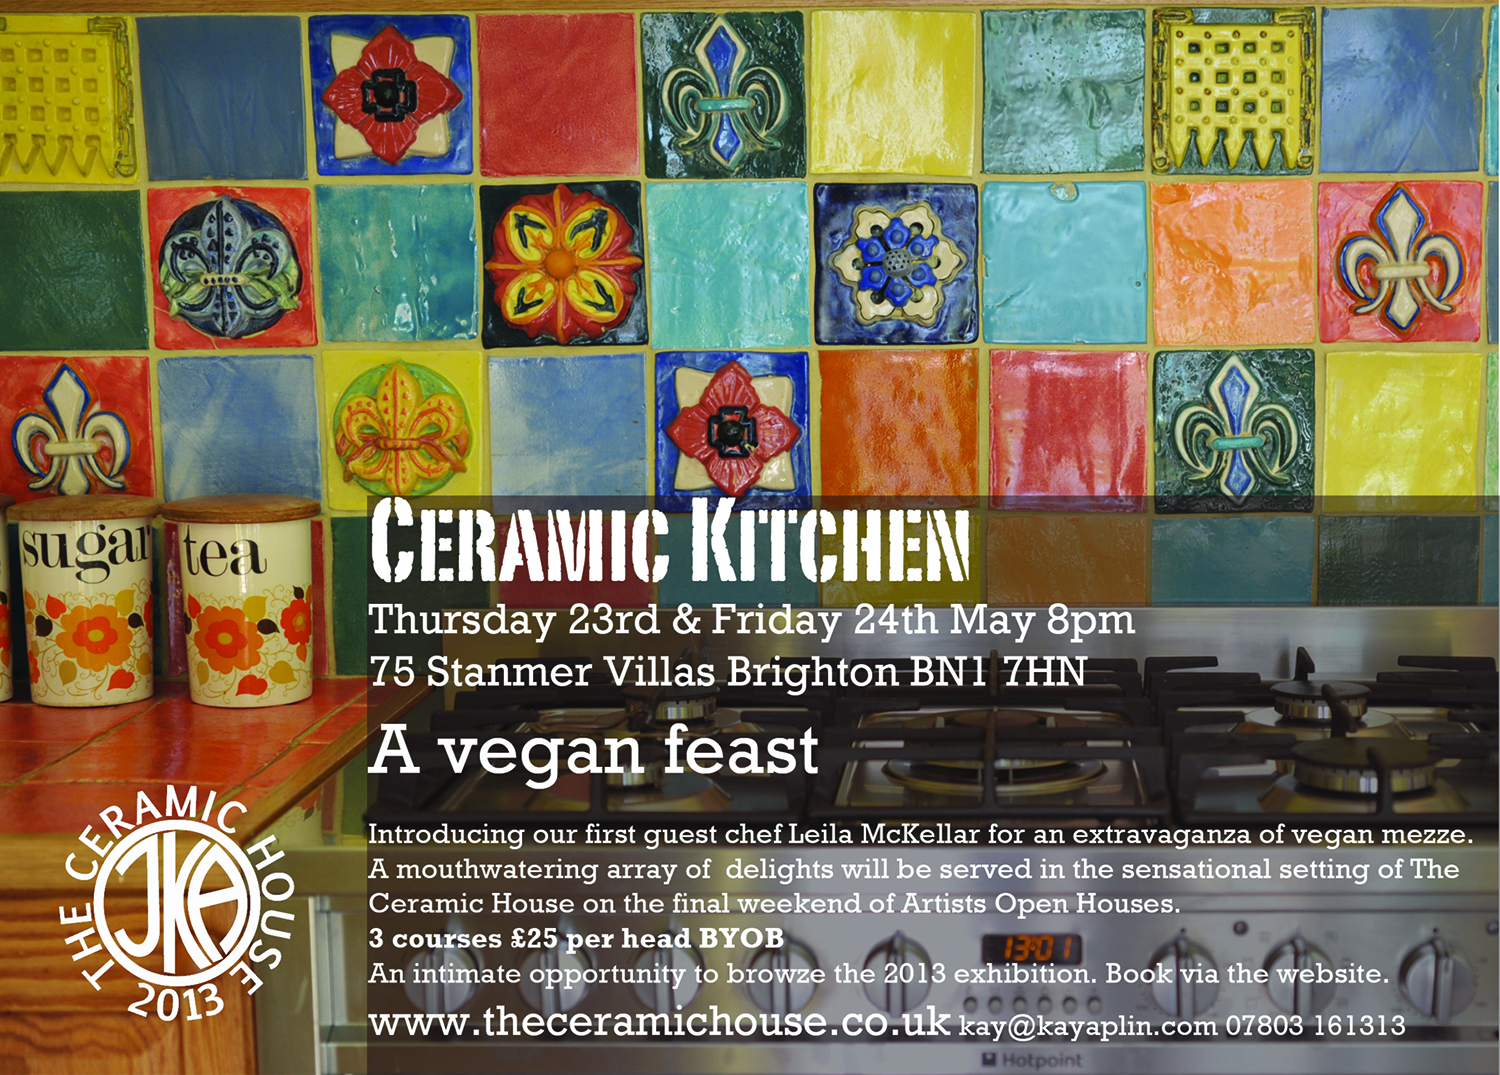 MAY 2013 CERAMIC KITCHEN FLYER